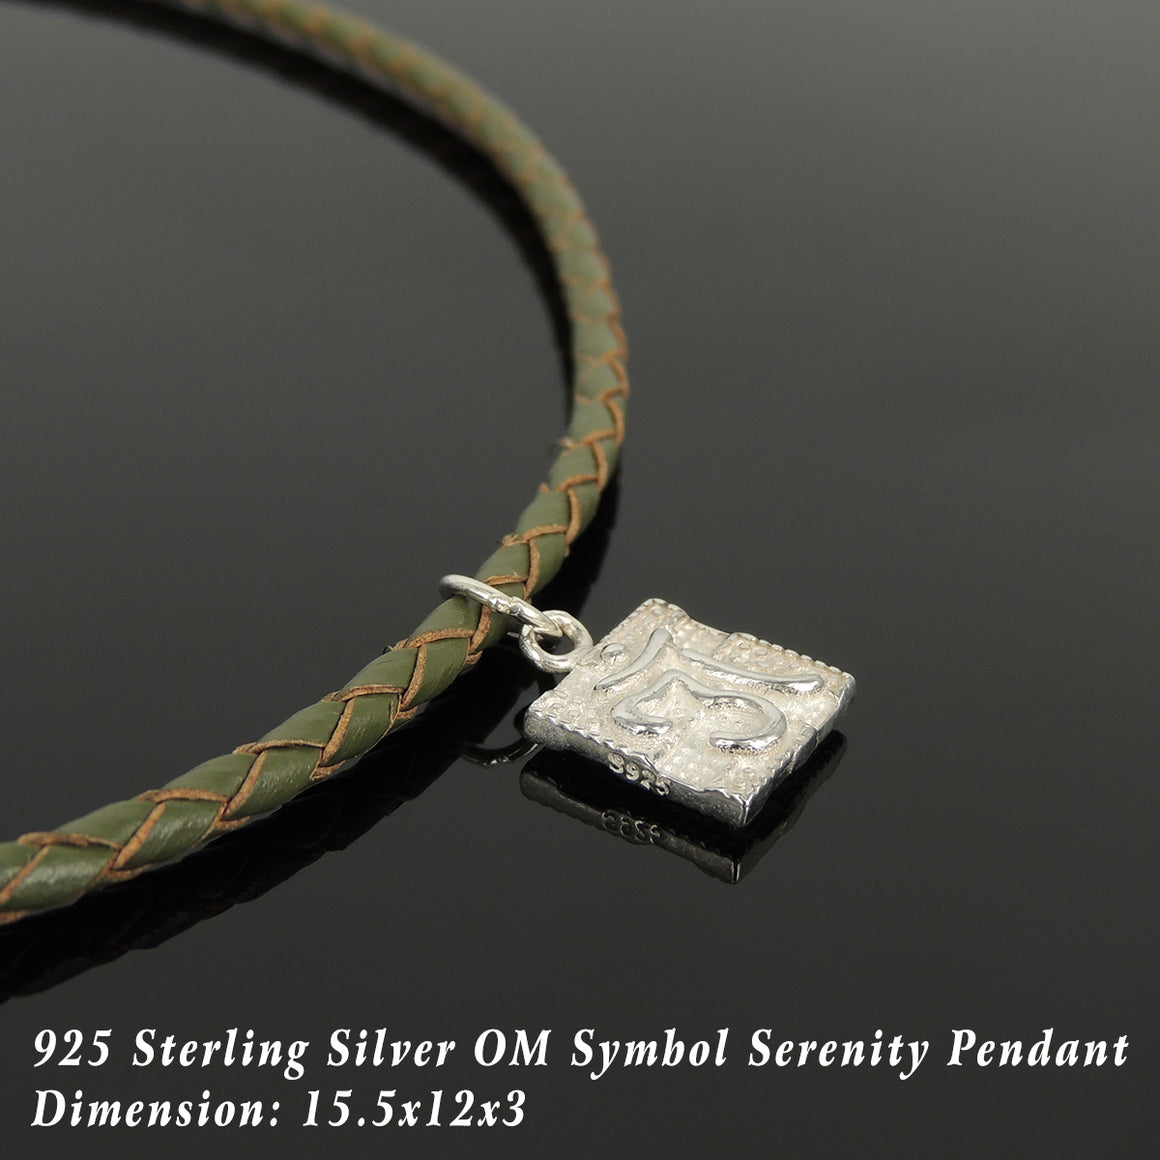 Handmade Om Serenity 90's Choker Necklace - Authentic Olive Green Leather for Men's Women's Casual Wear, Healing with Sterling Silver 925 (non-plated) Toggle S-Clasp NK217